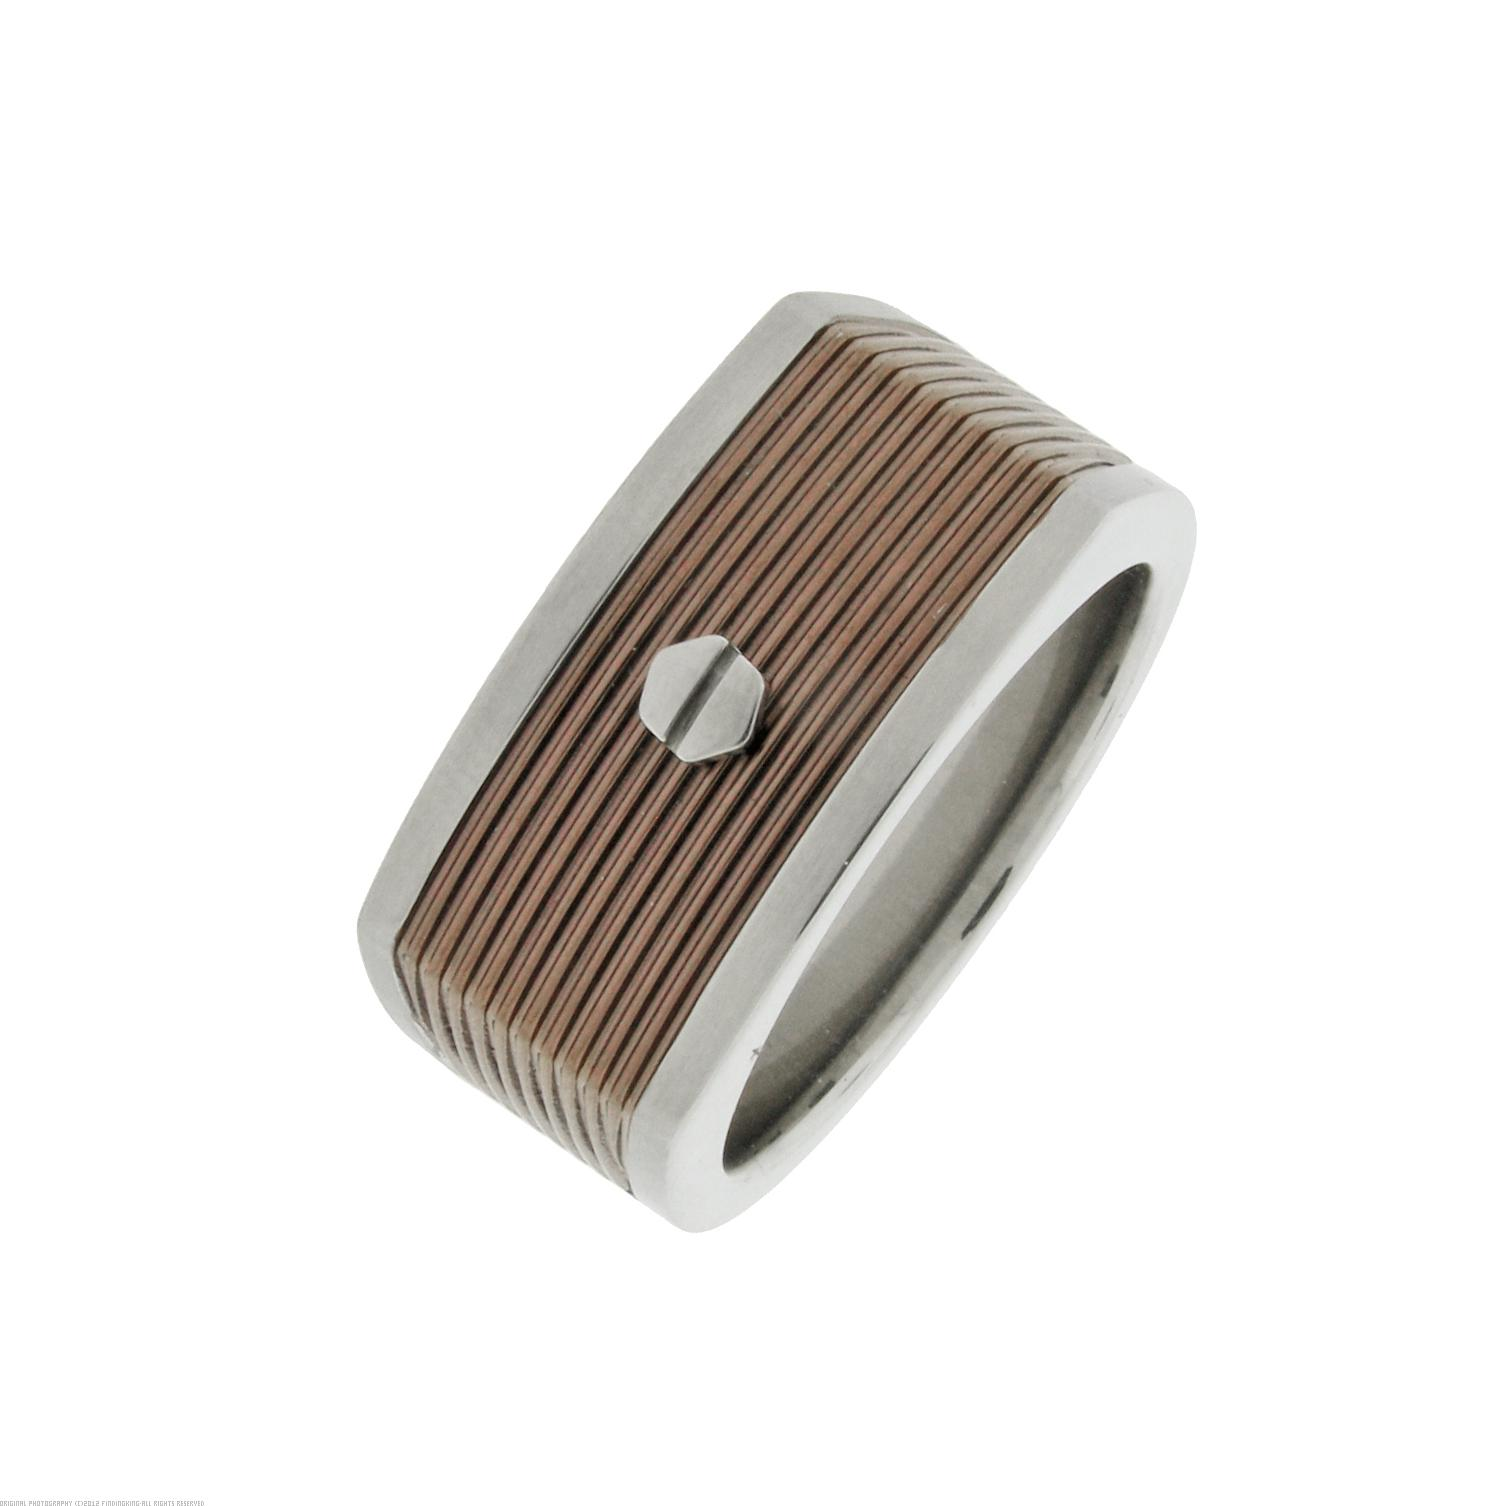 Findingking Stainless Steel Chocolate Plated Ring Sz 11 at Sears.com